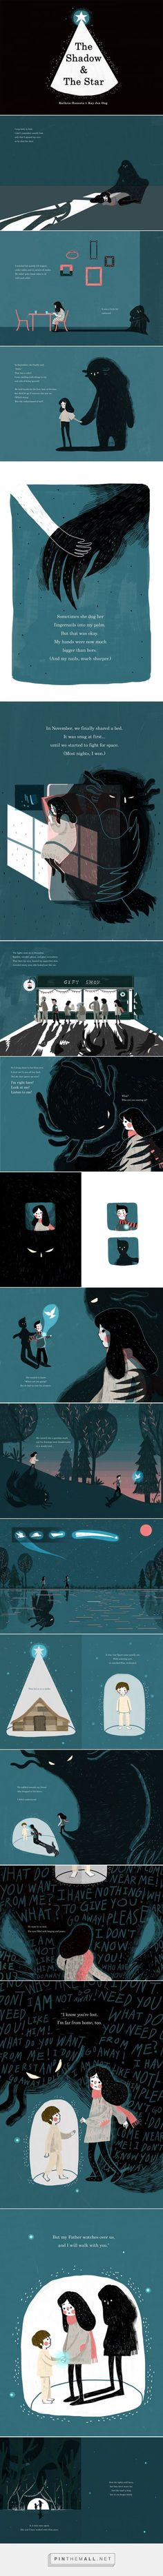 The Shadow & The Star — Written by: Kay Jen Ong | Illustrated by: Kathrin Honesta